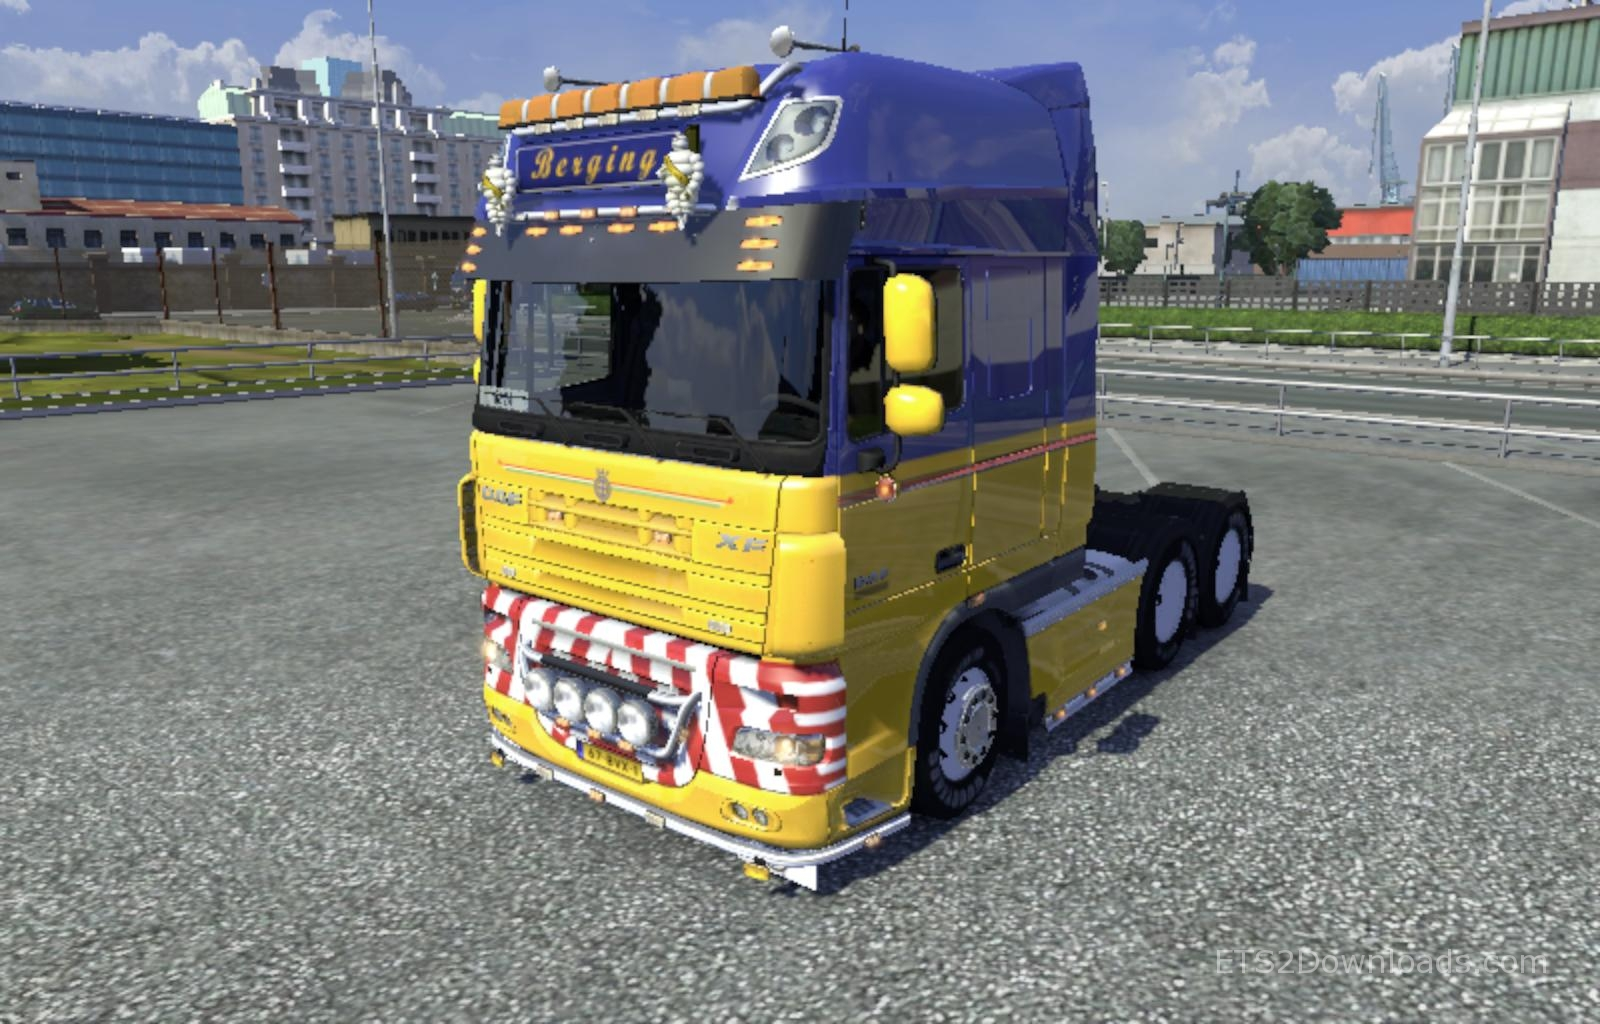 berging-skin-pack-for-daf-xf-50keda-1